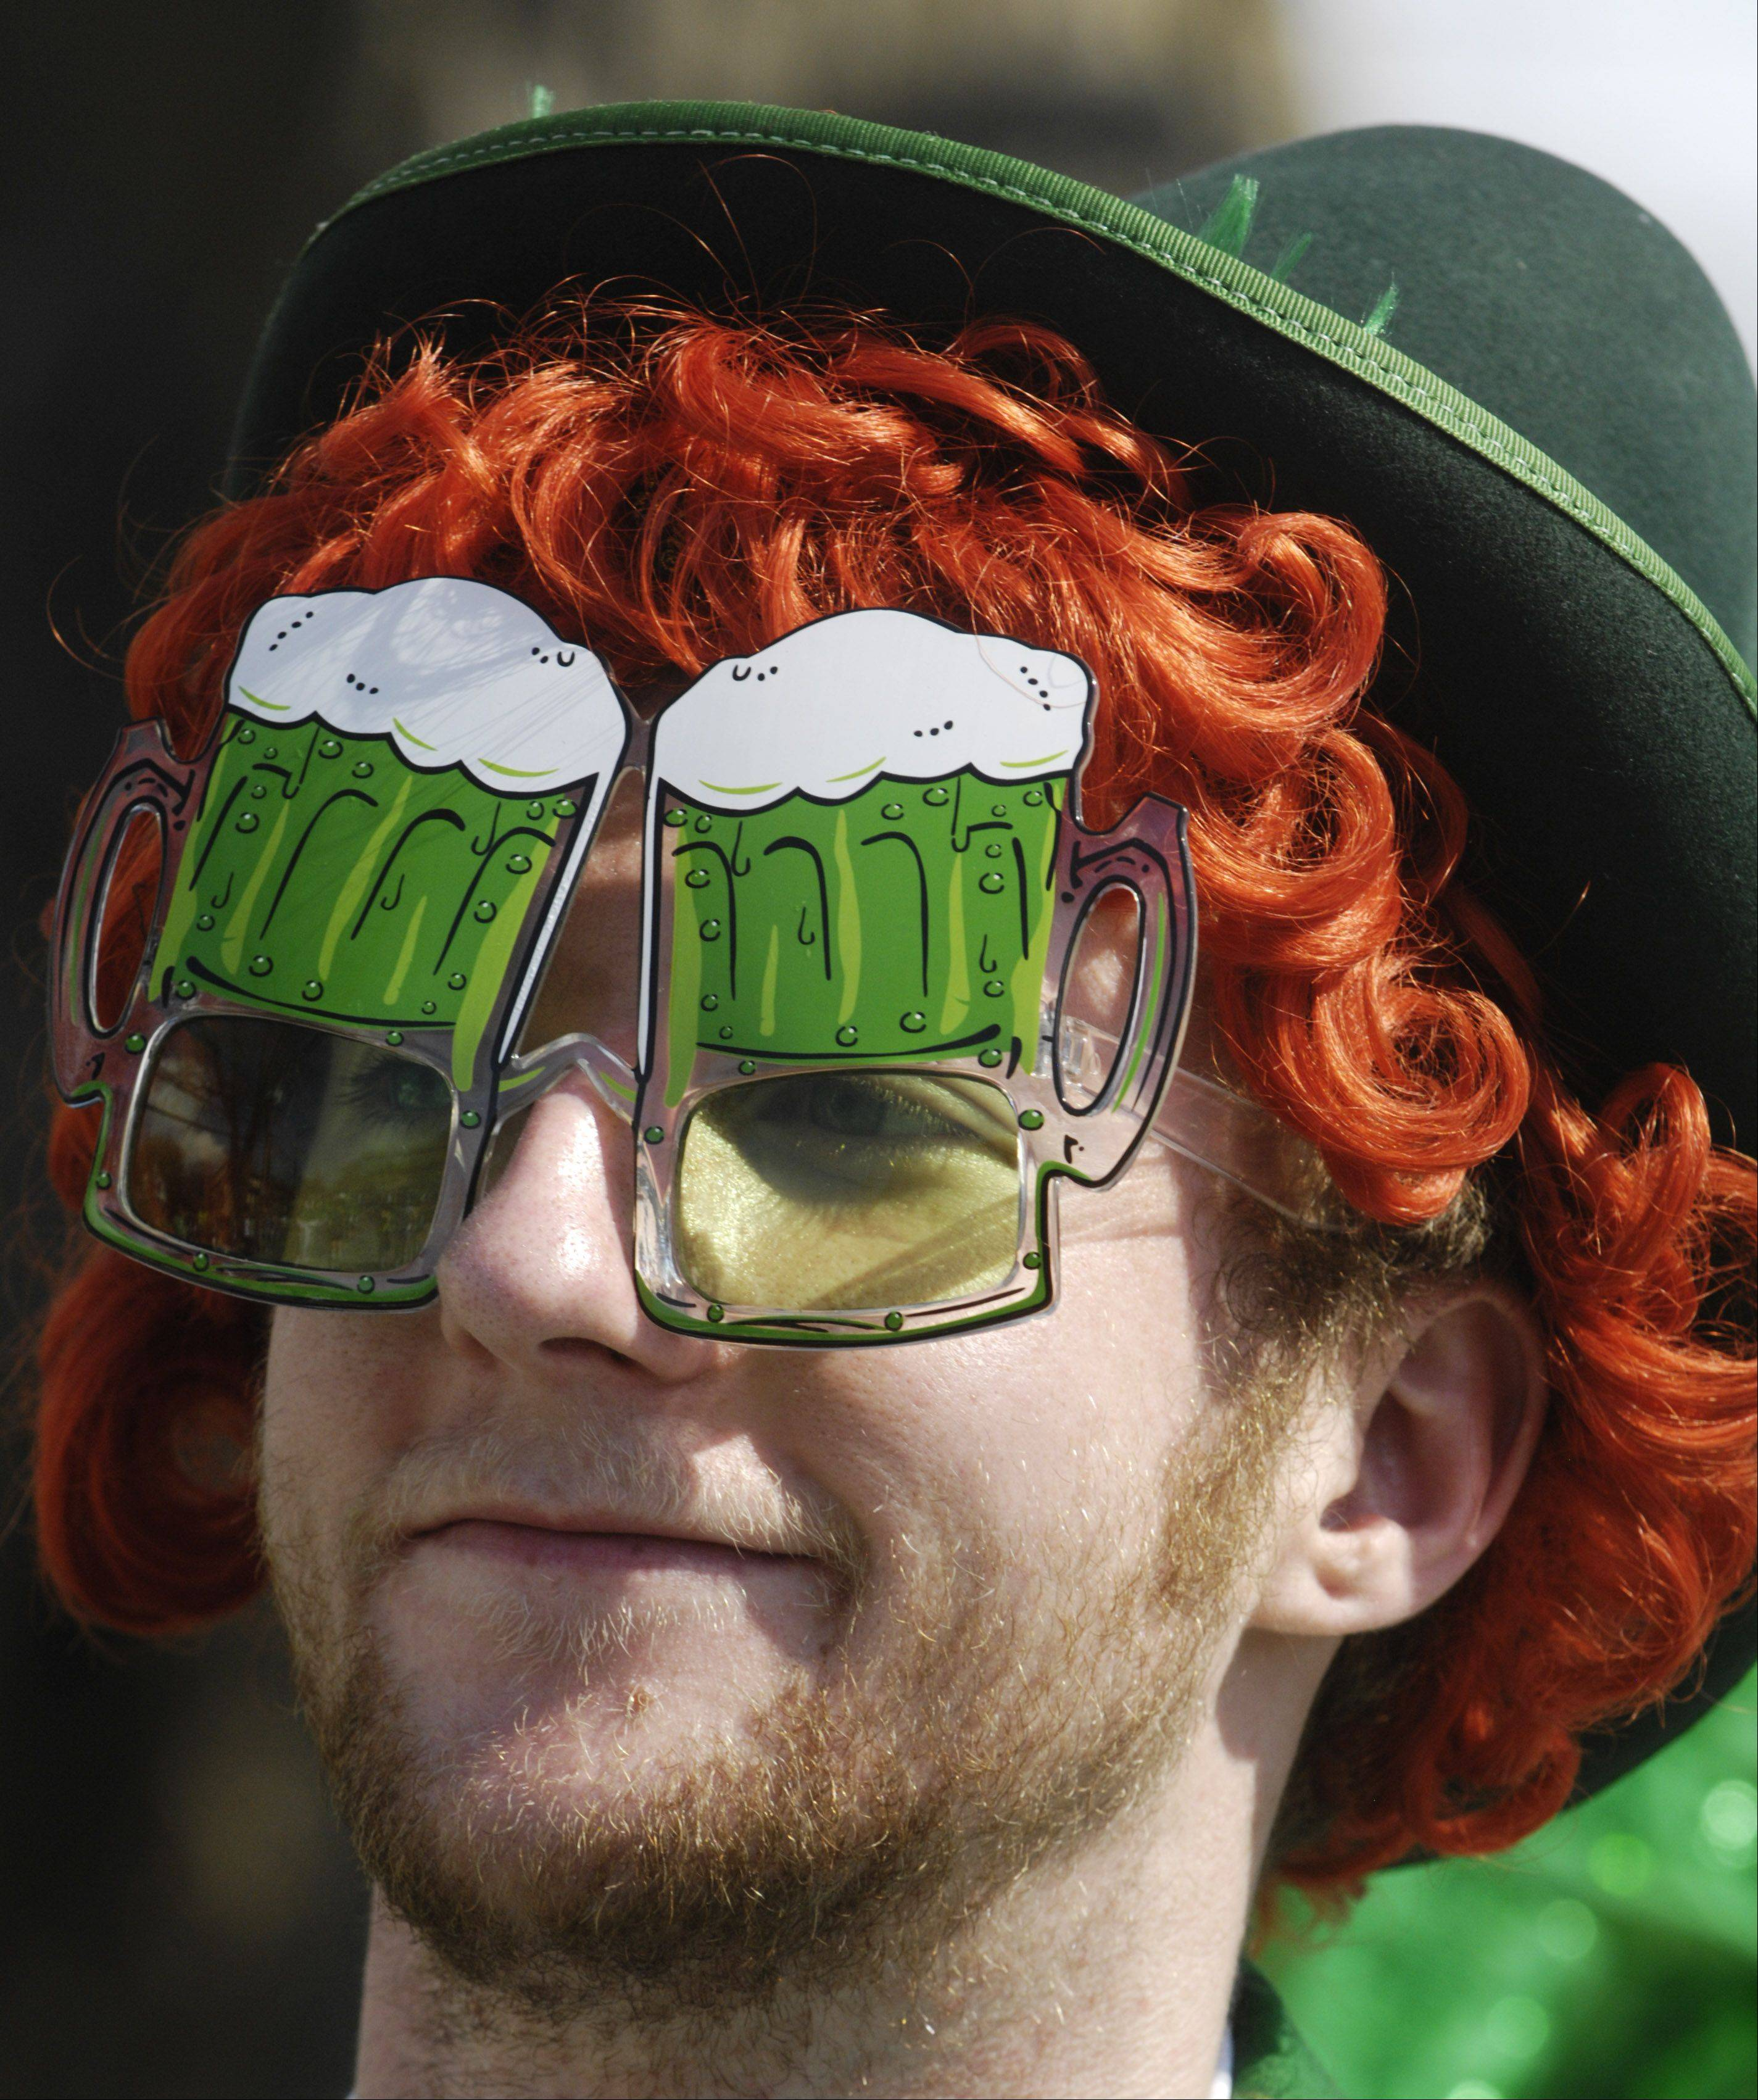 Ethan Simpson of Park Ridge rides in the Bauer's Brauhaus car during last year's Palatine St. Patrick's Day Parade.